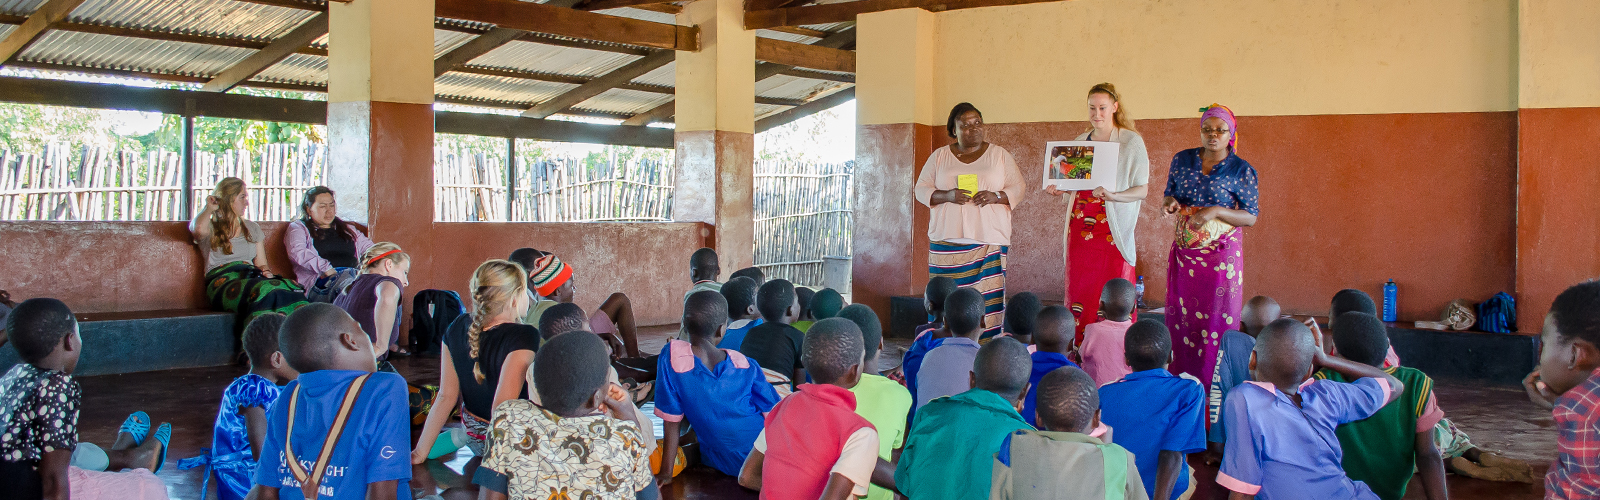 Nursing Students teaching young people in Malawi about public health